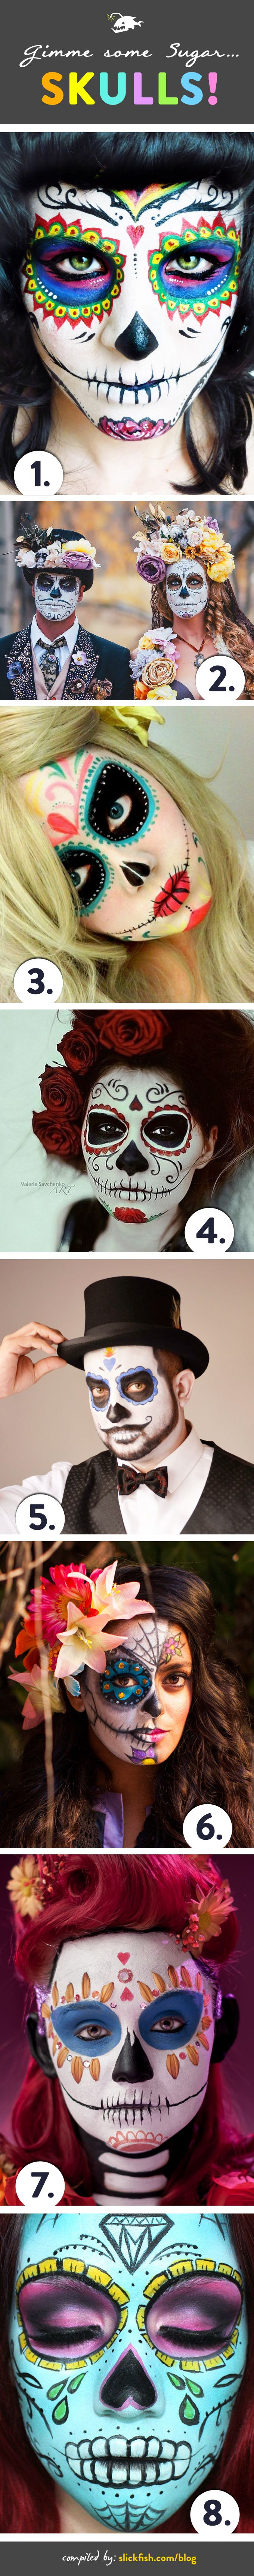 Sugar skulldesignsare a popular choice for adult face paint this Halloween. We love the look, so wegathered some of our favorites for your inspiration. | by slickfish.com